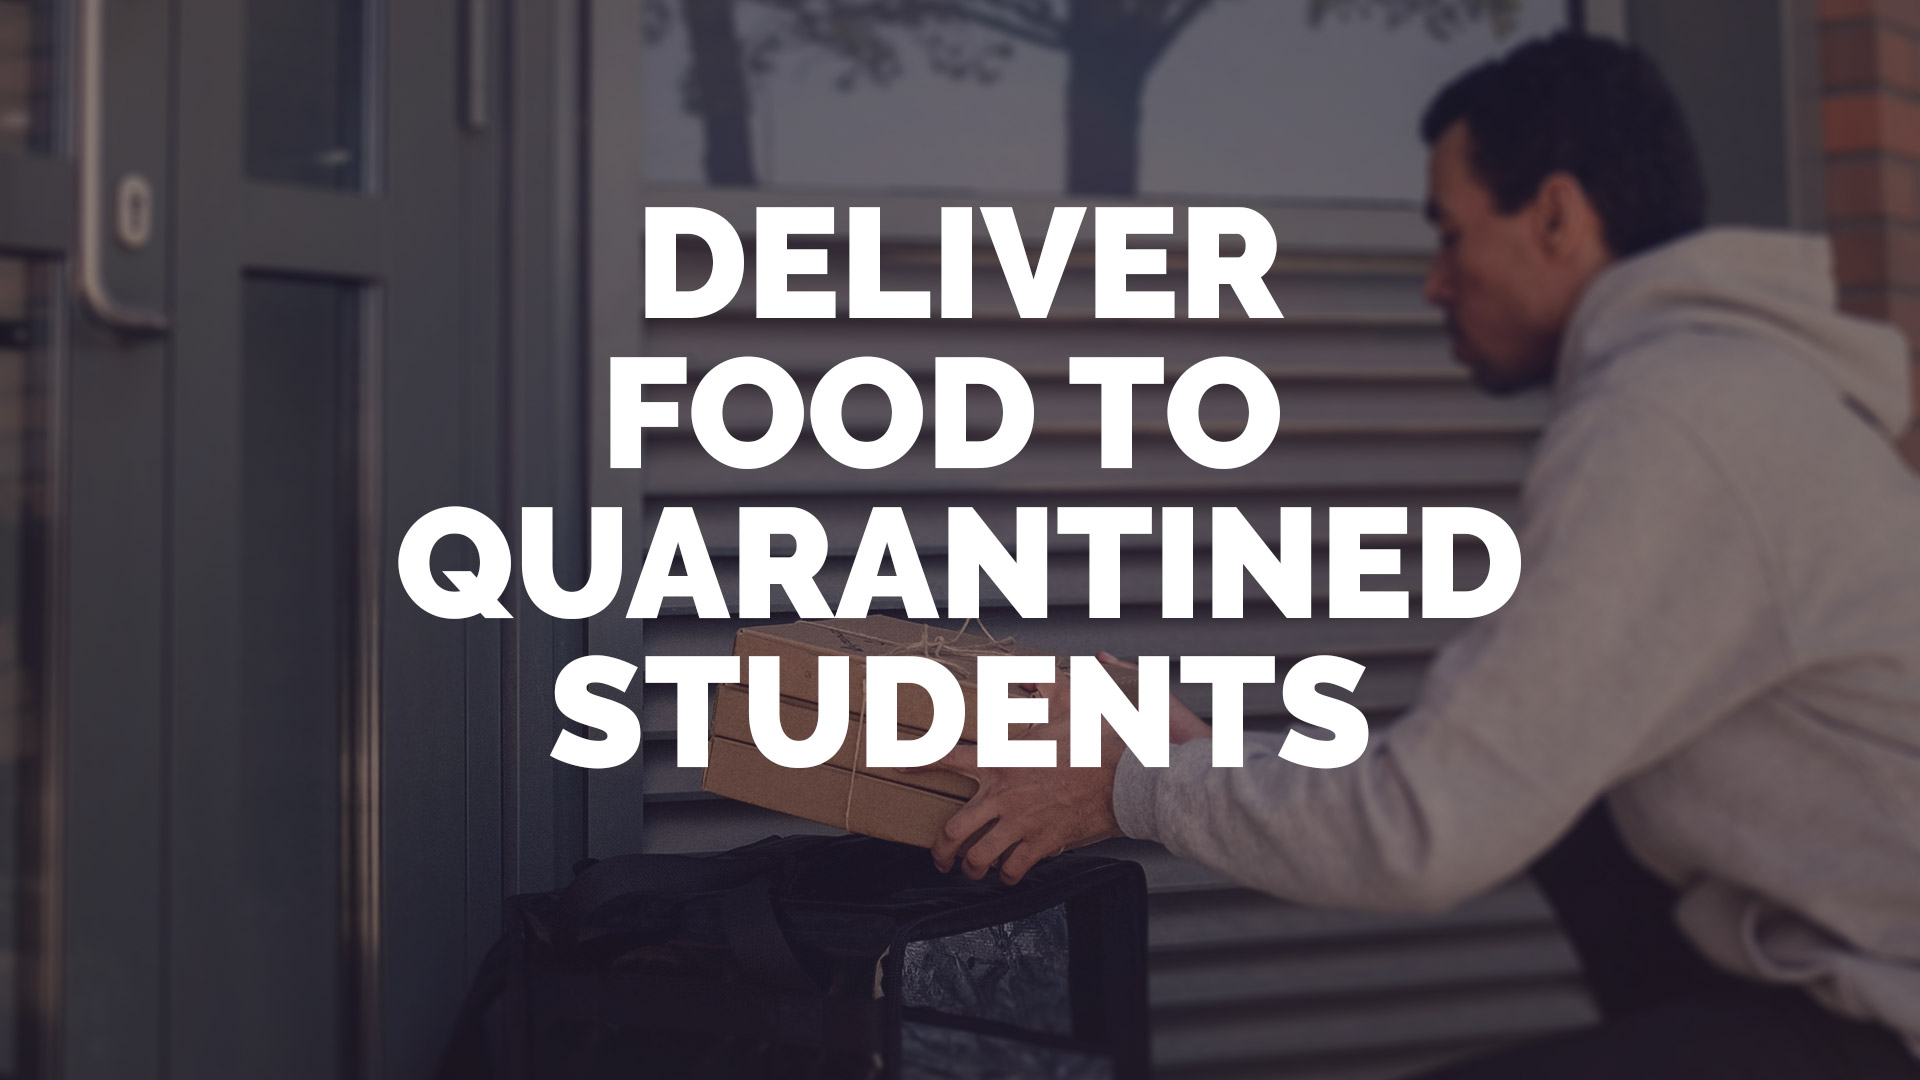 Deliver Food to Quarantined Students